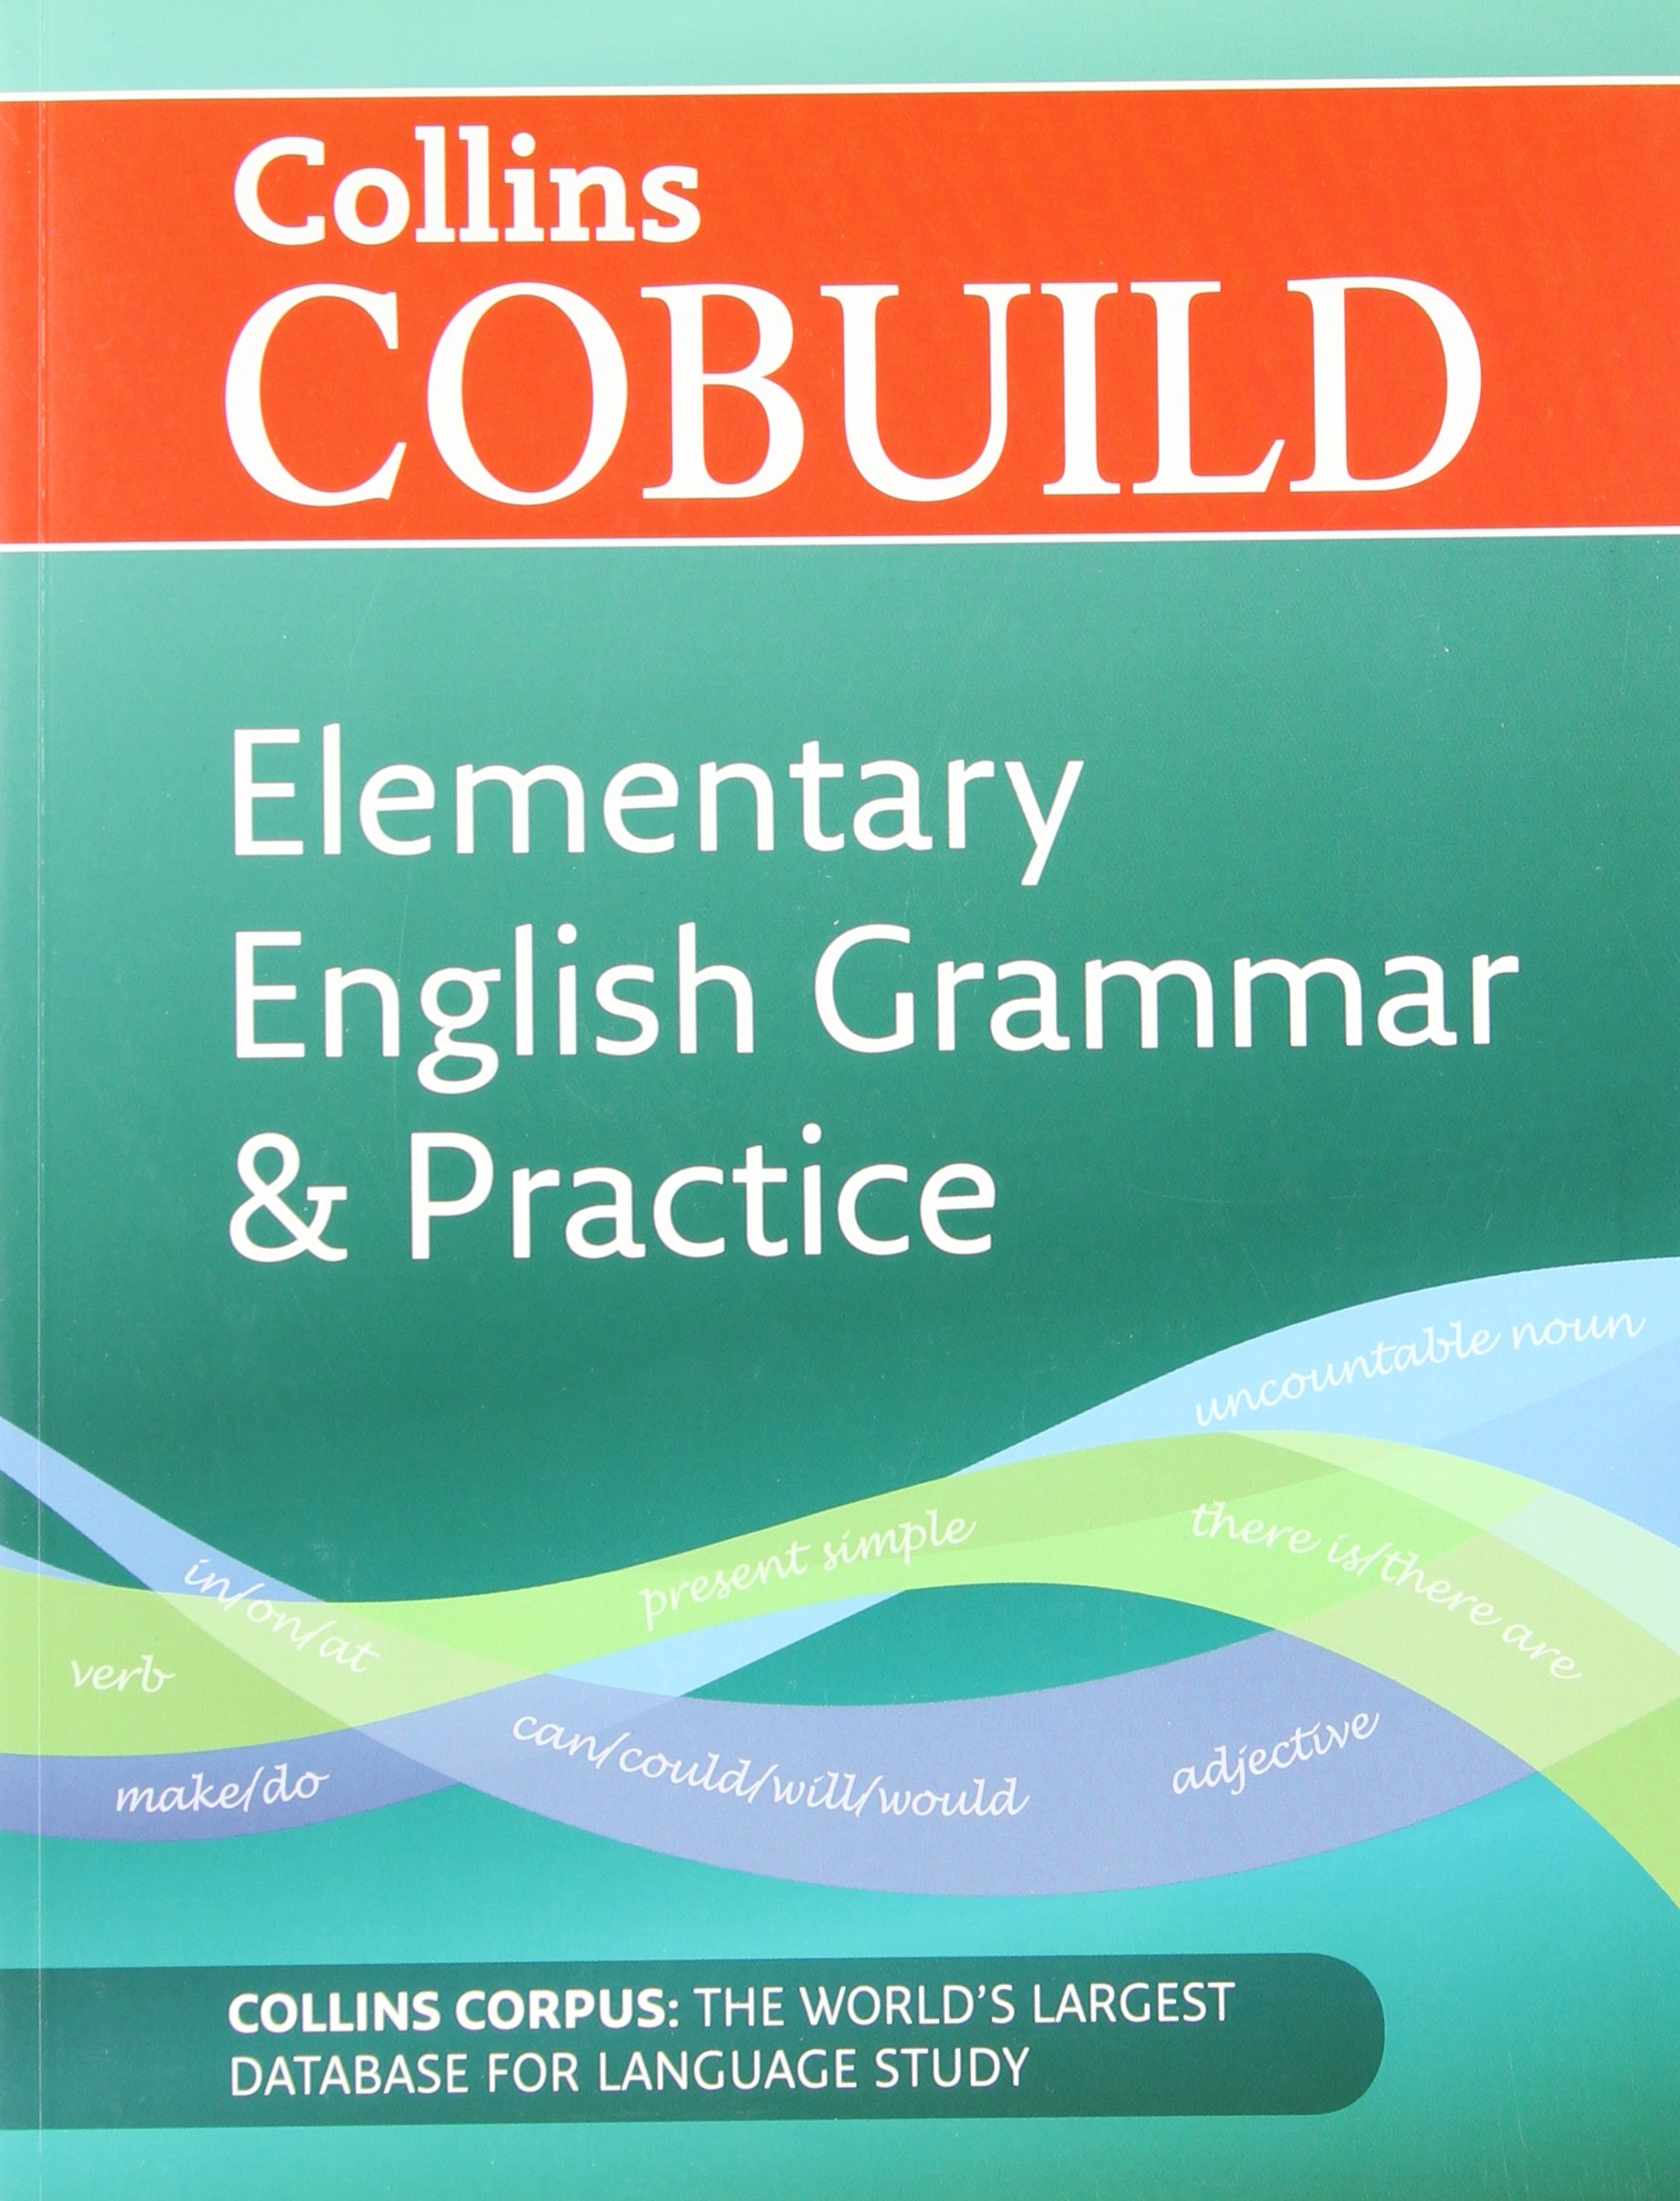 Worksheet Grammar For Elementary buy cobuild elementary english grammar and practice a1 a2 collins book online at low prices in india element